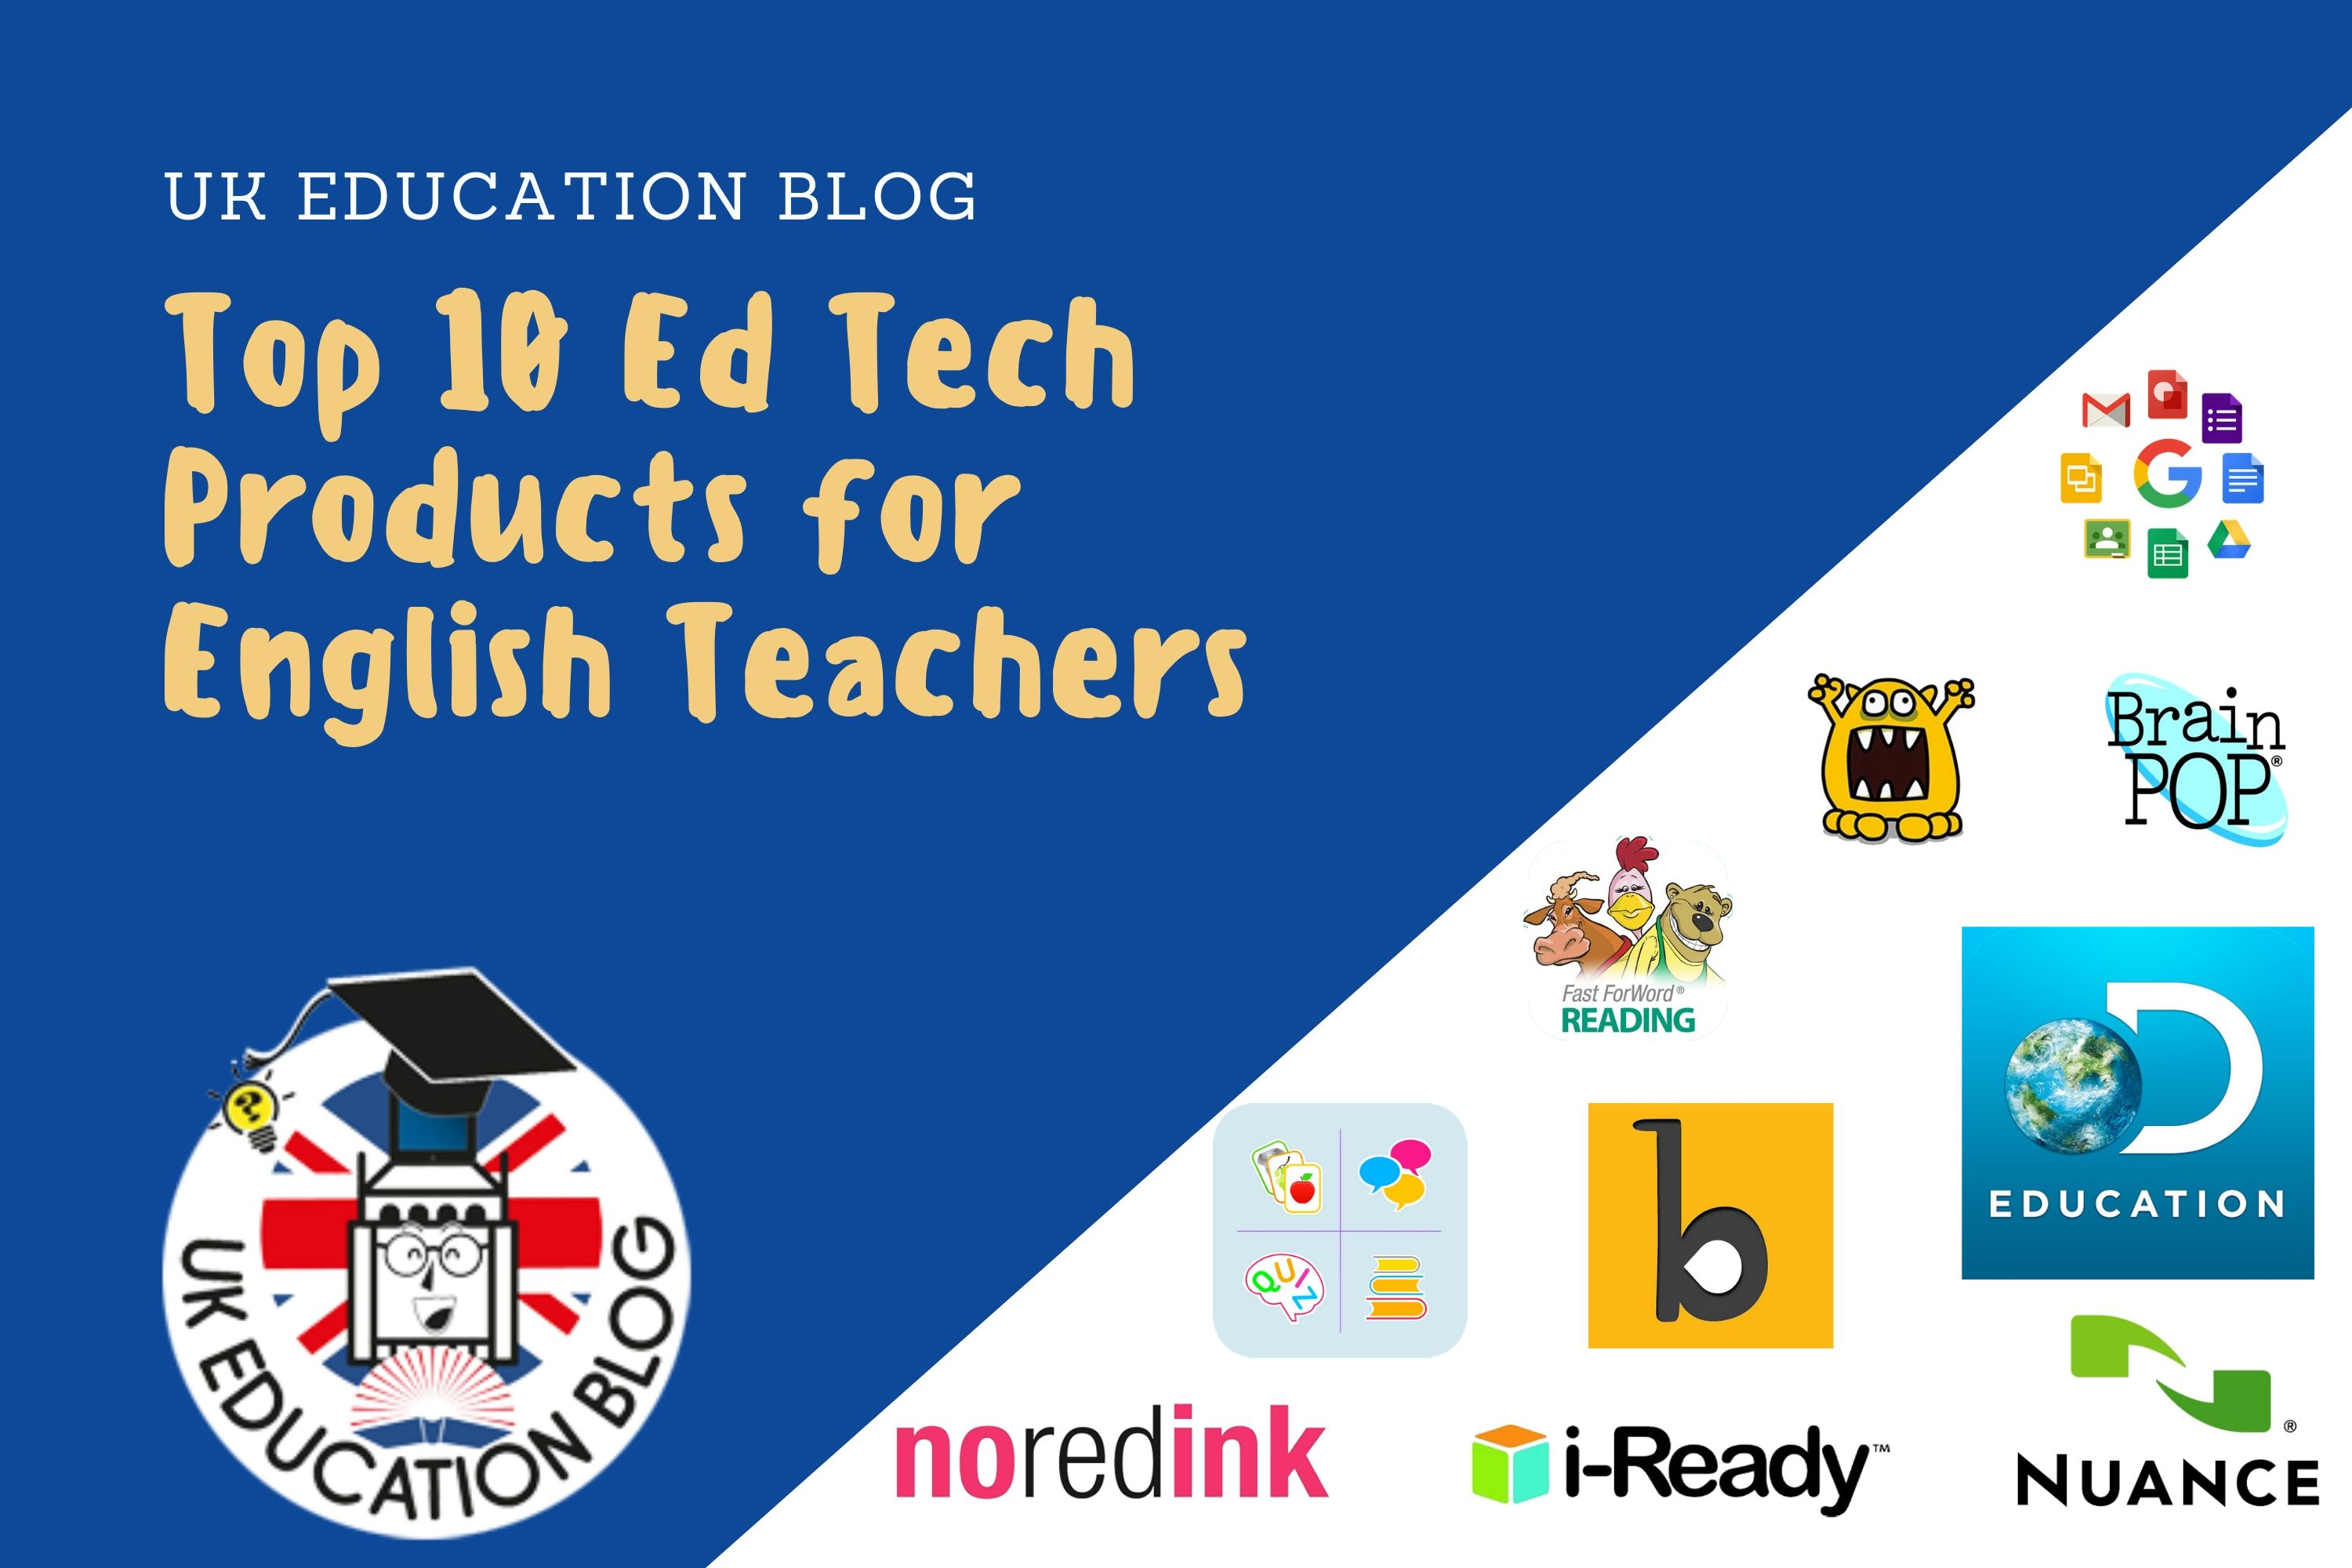 Ed Tech Products for English Teachers